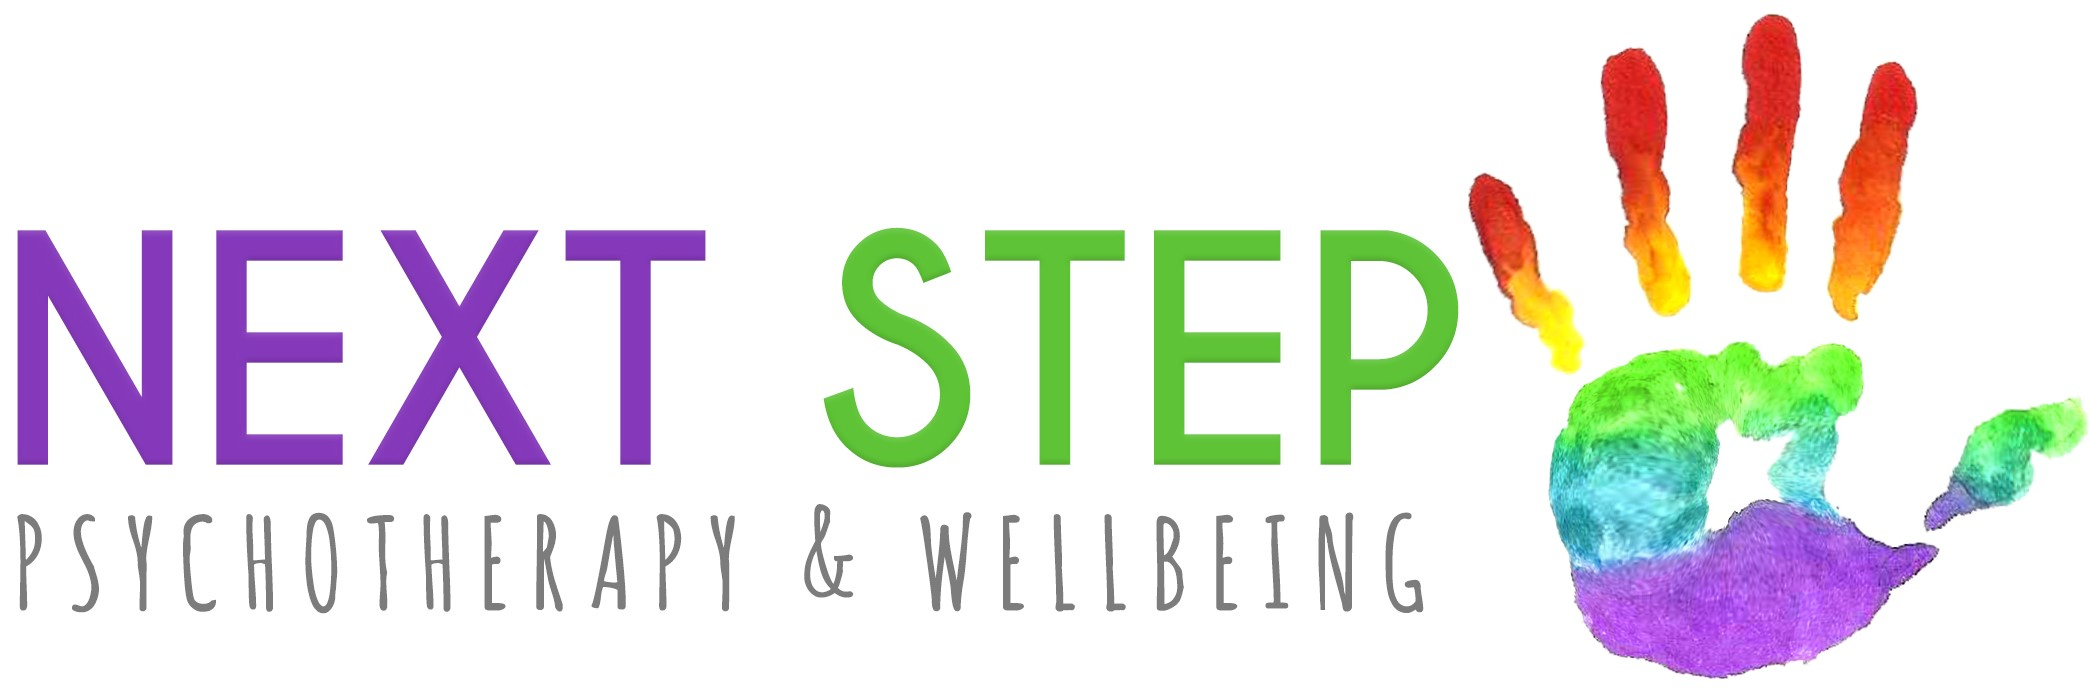 Next Steps Psychotherapy & Wellbeing